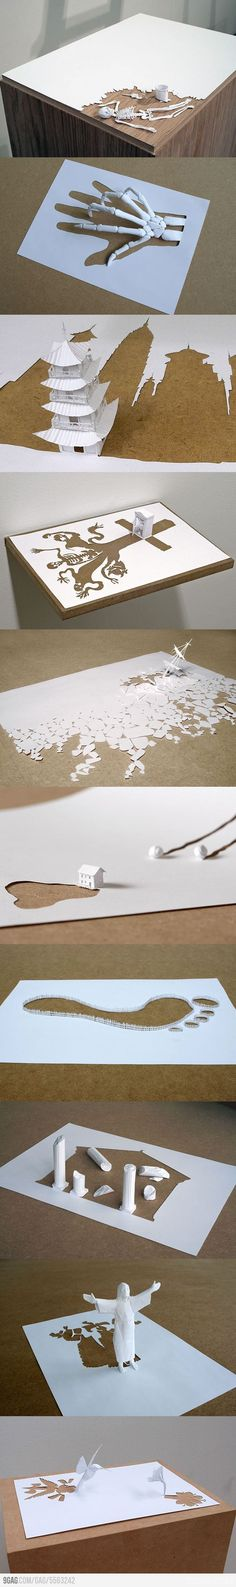 Mother of Paper Art